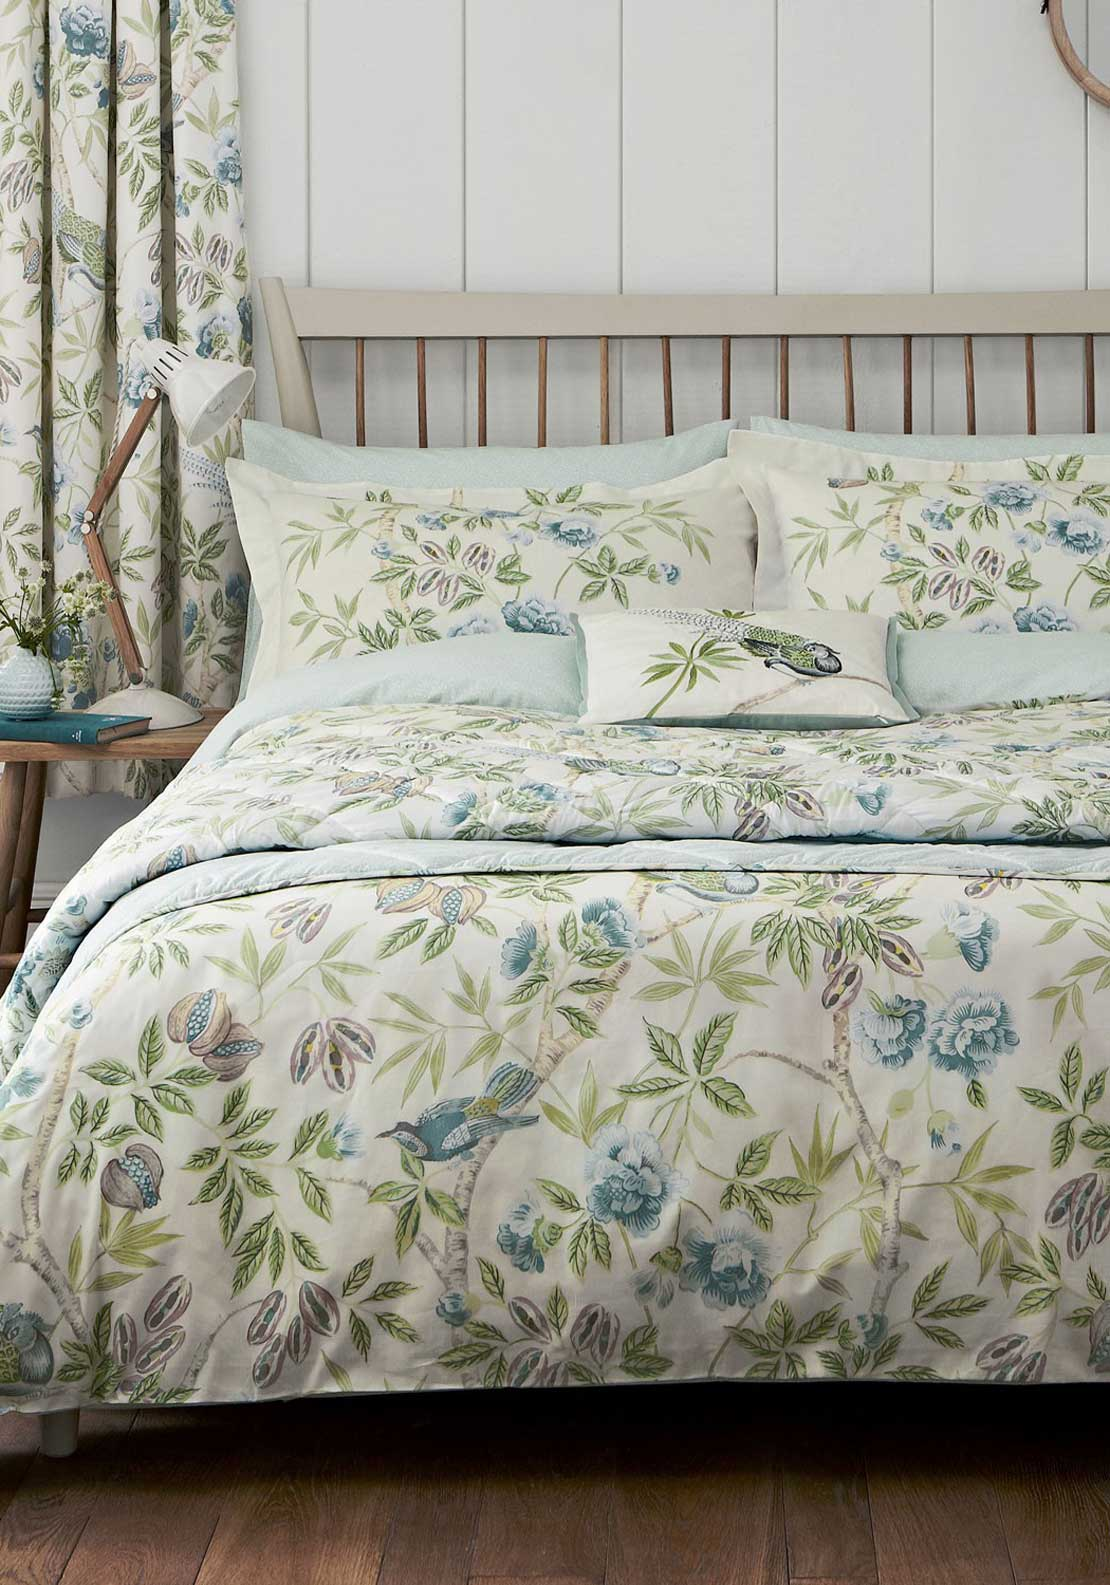 Sanderson Options Abbeville Duck Egg Bed Linen Set, Beige with Green and Blue Forest Print